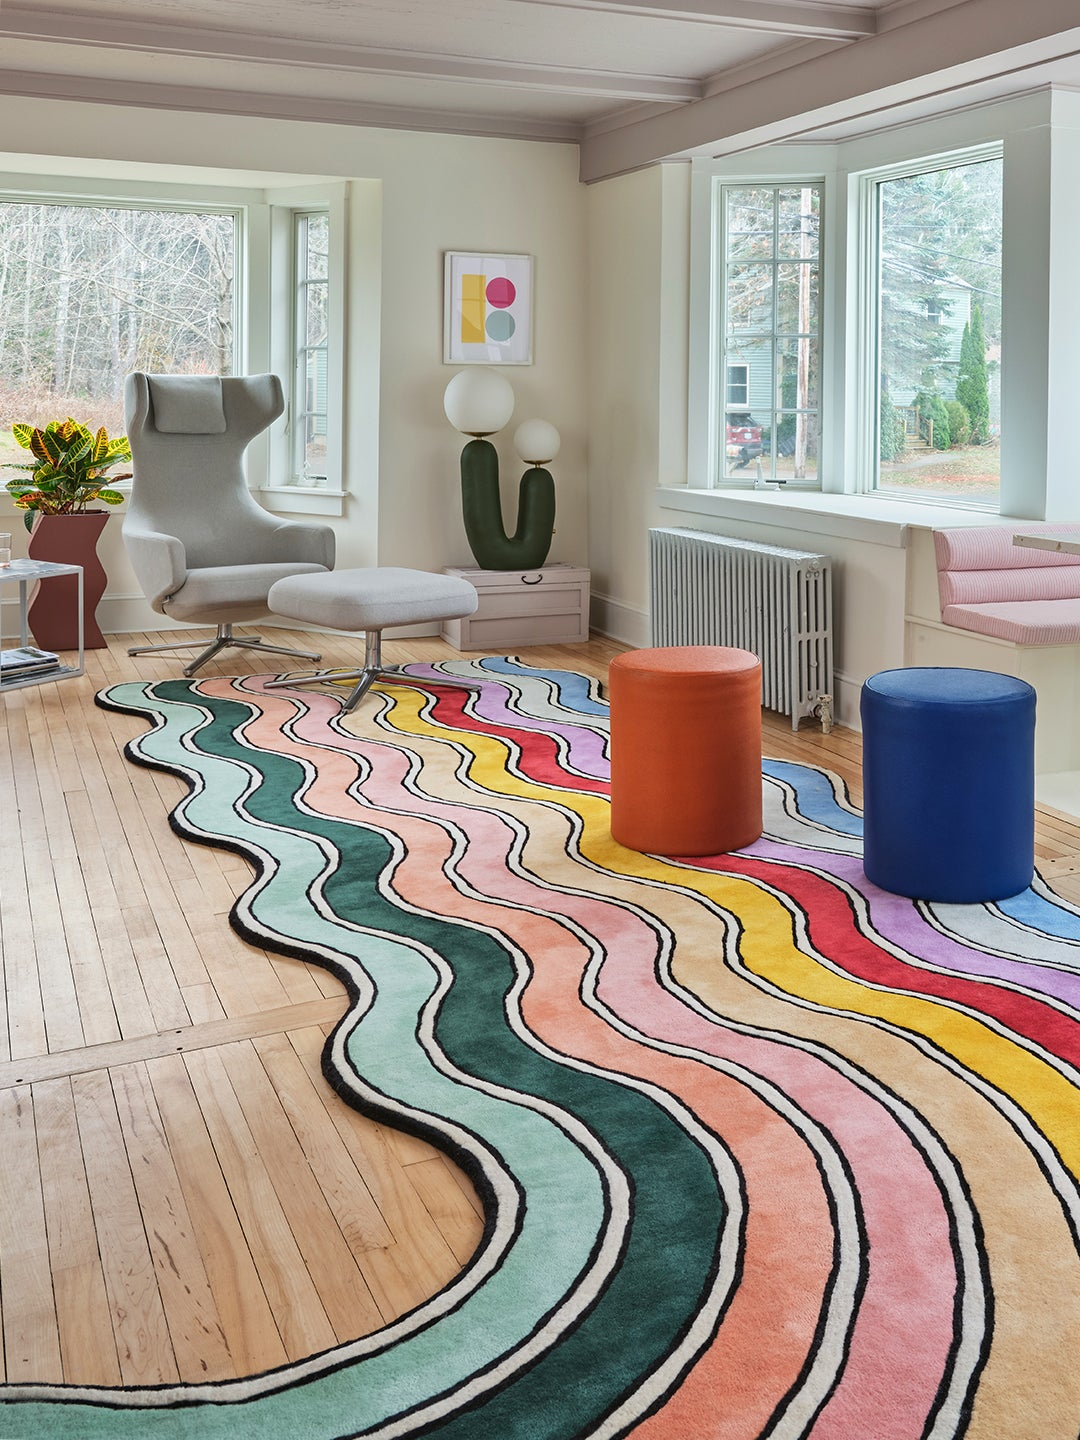 Pieces-by-An-Aesthetic-Pursuit-Rug-Competition-